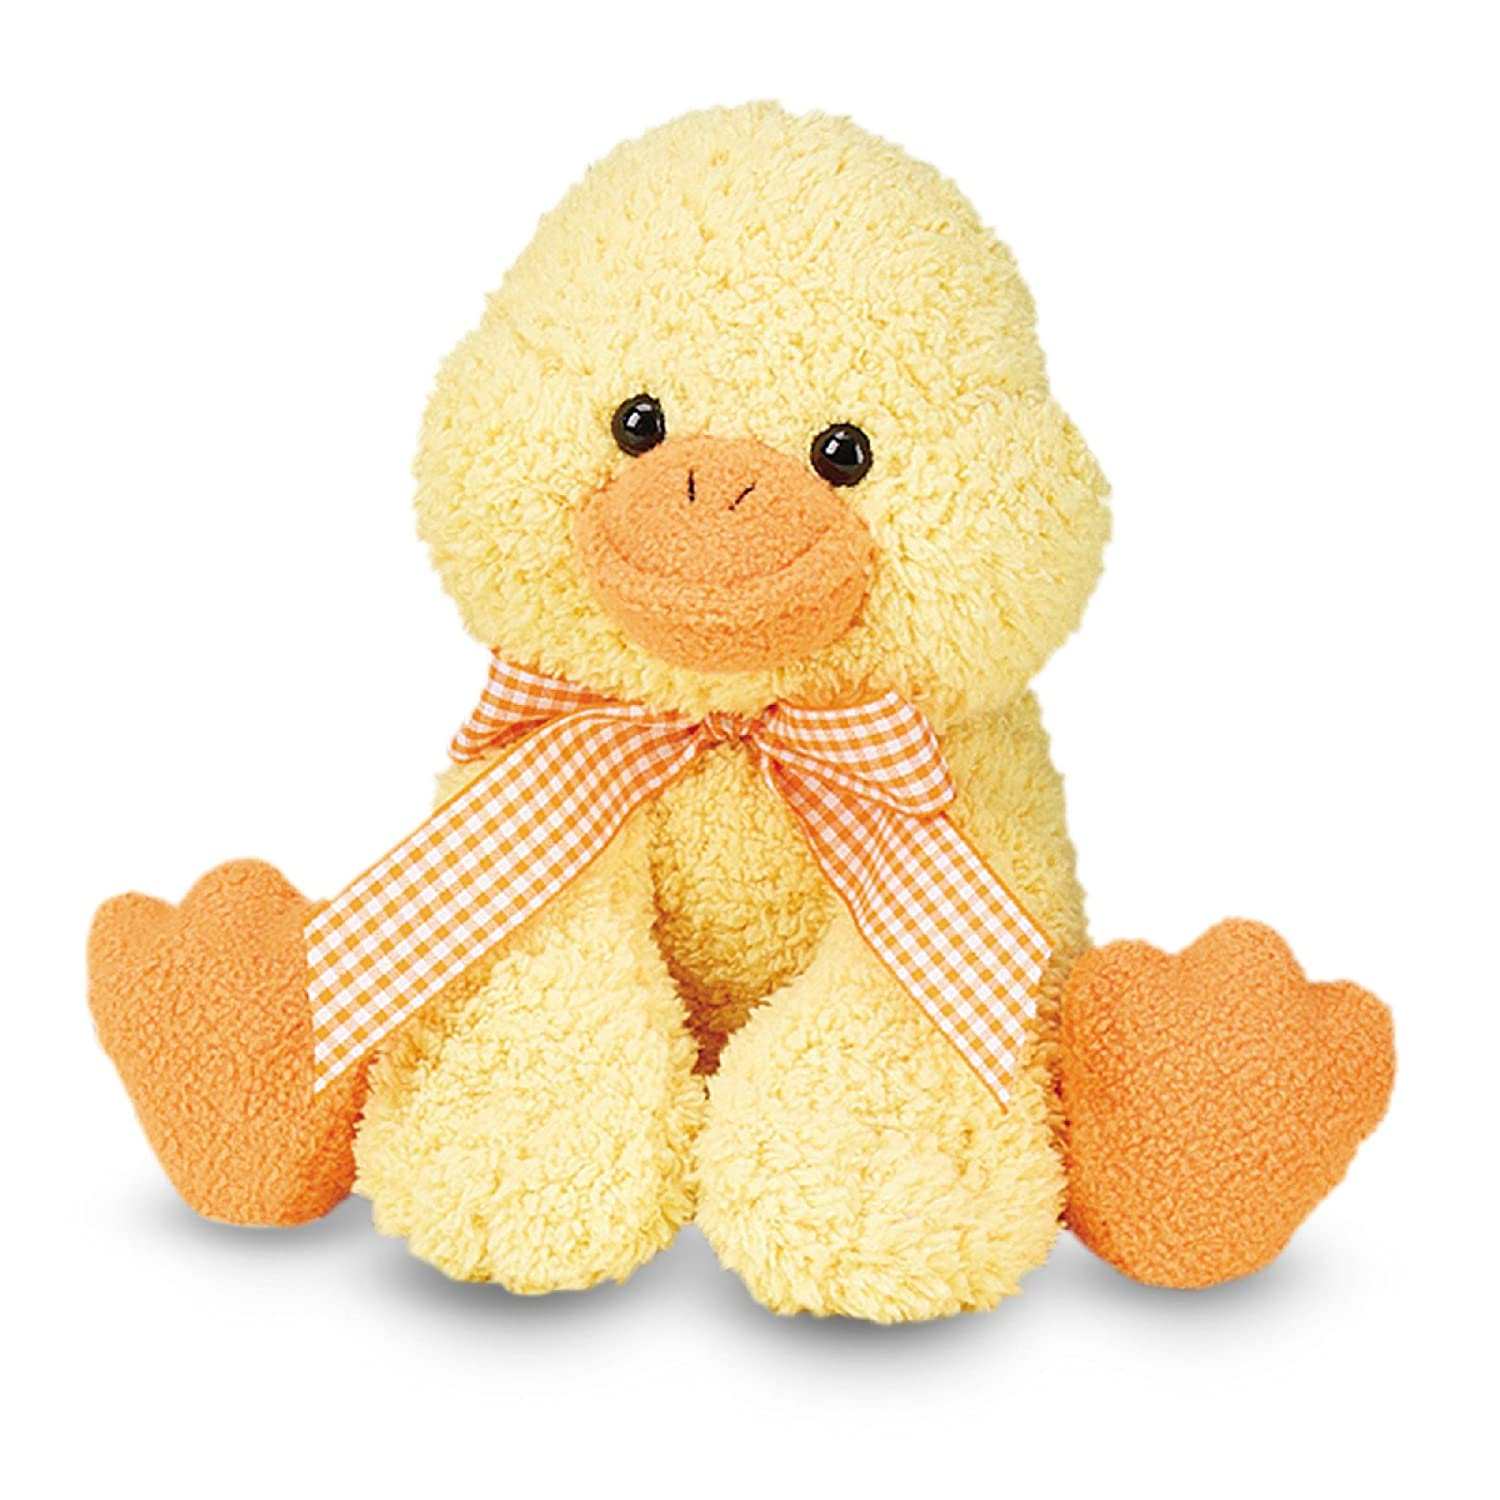 Ducky Stuffed Animal With Quacking Sound Effect